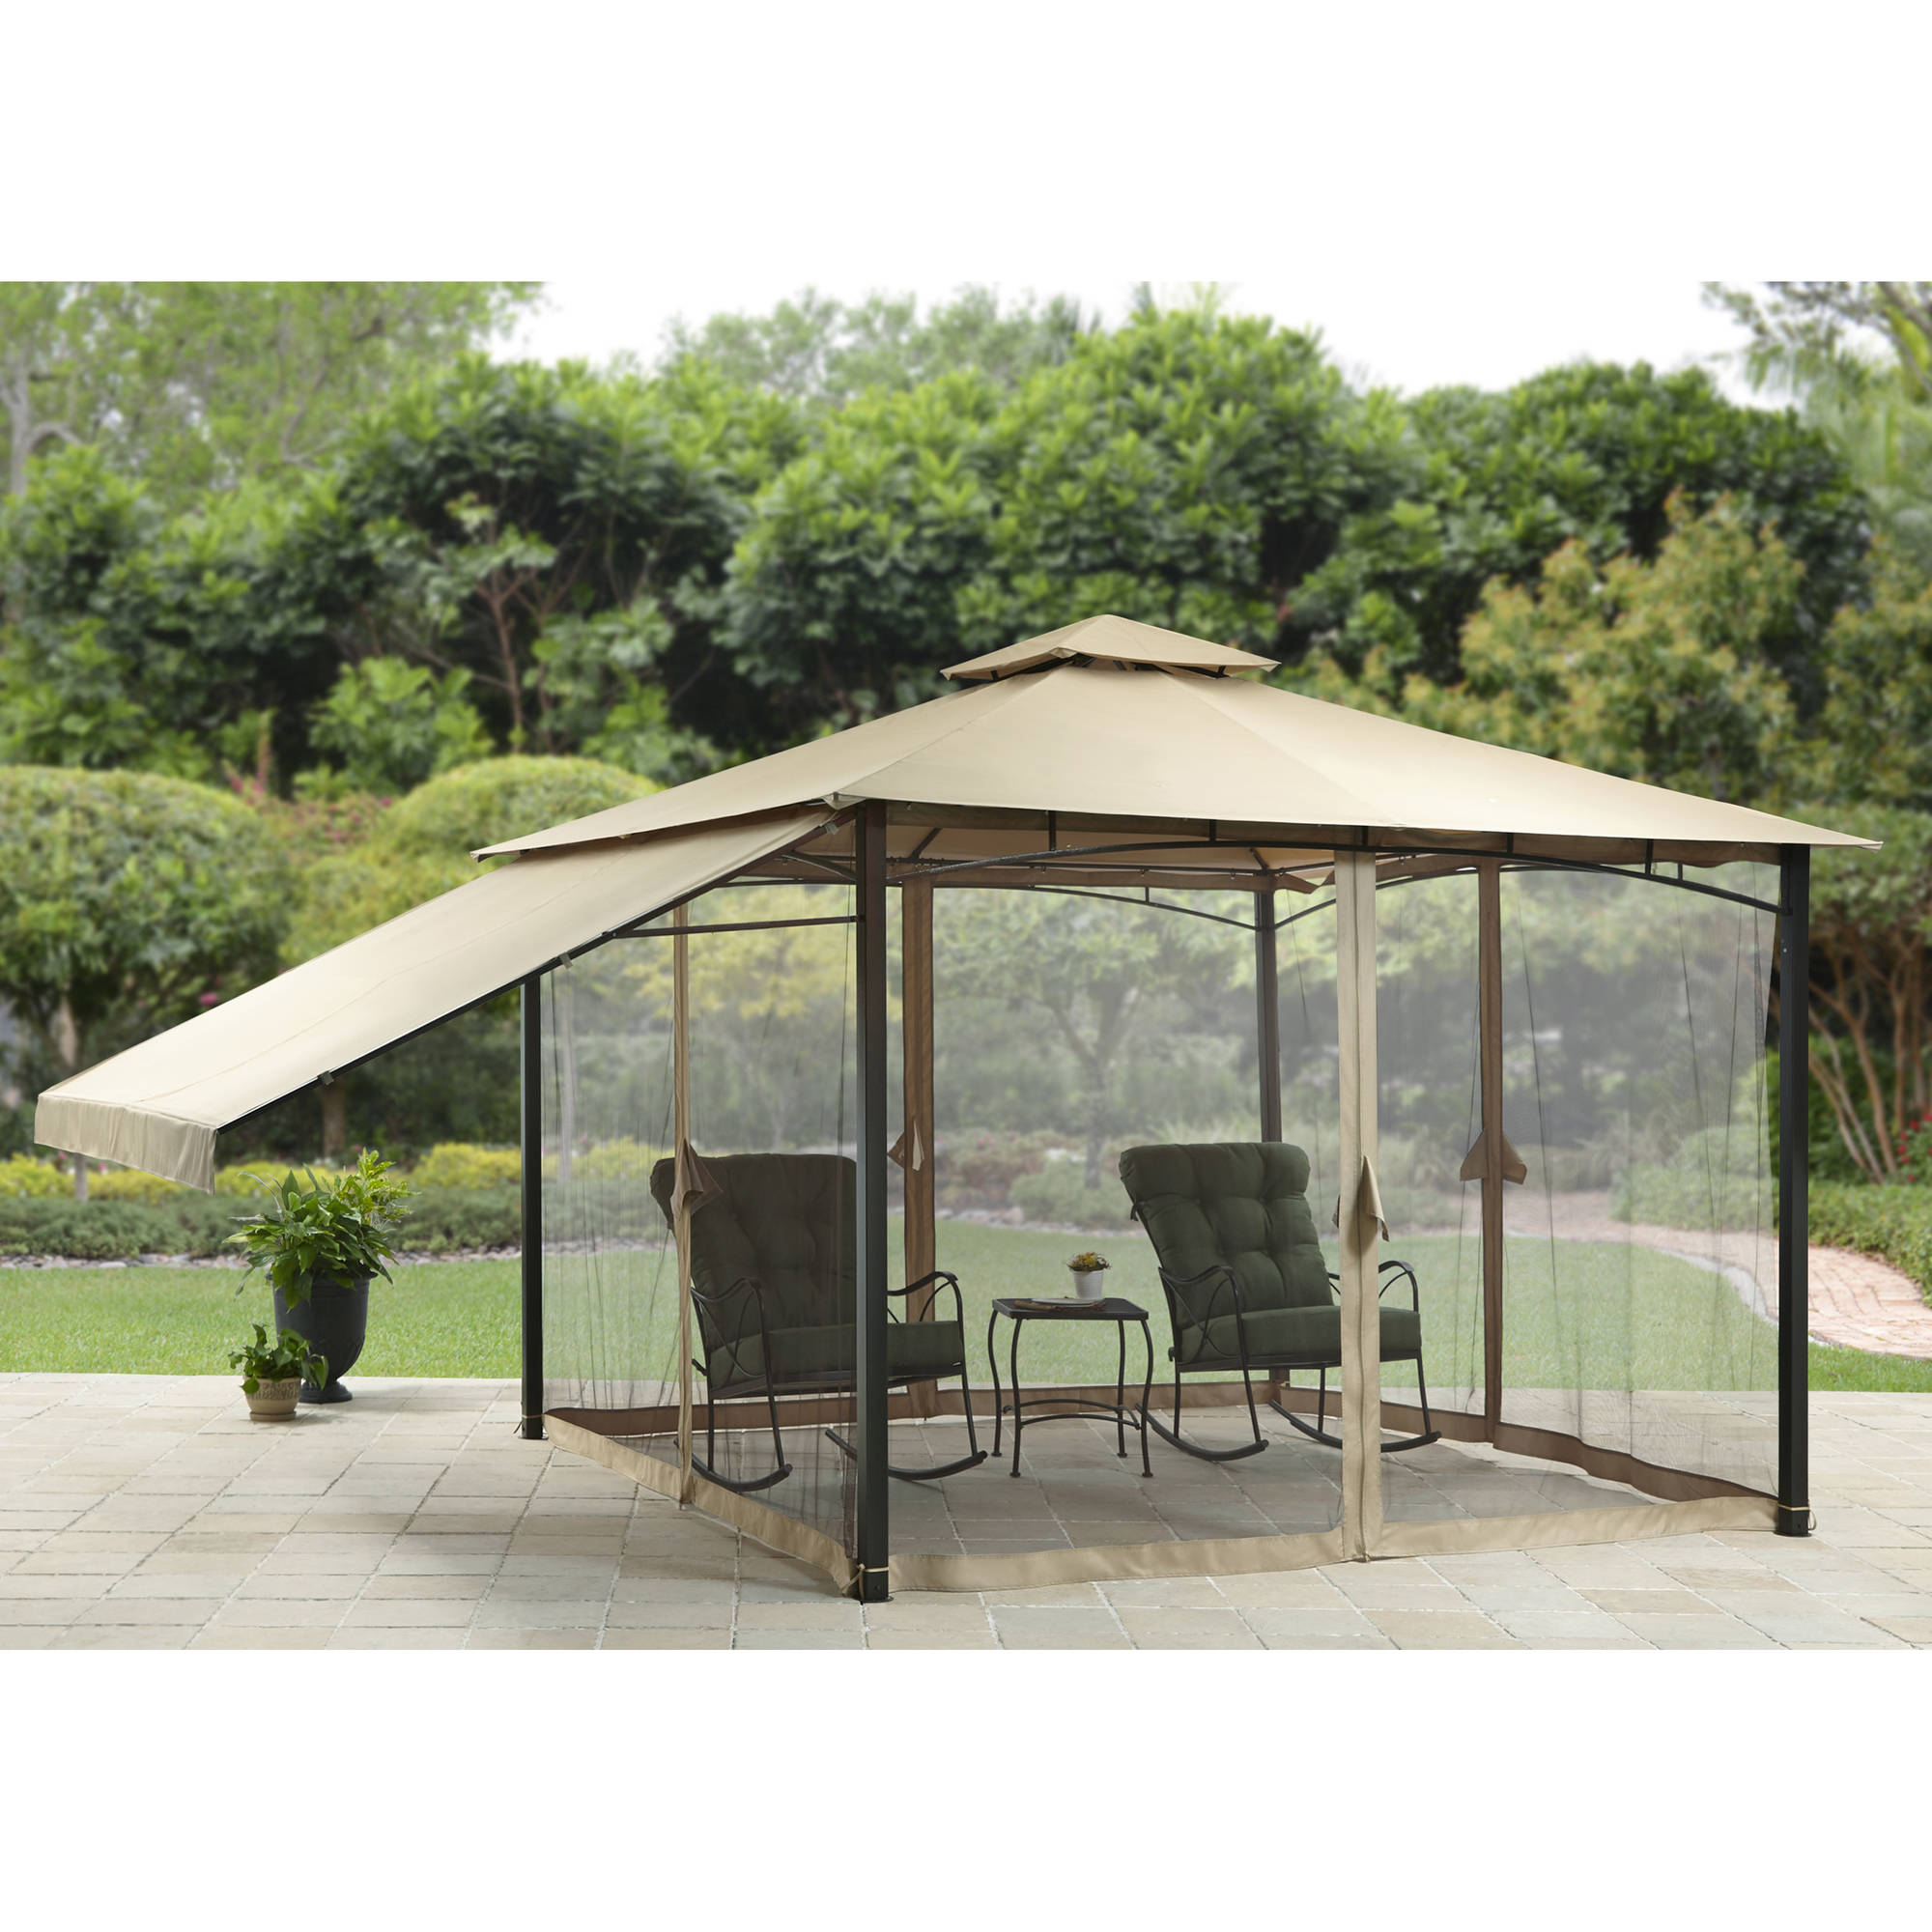 Better Homes and Garden Canal Drive 11' x 11' Cabin Style Gazebo with Adjustable Side by